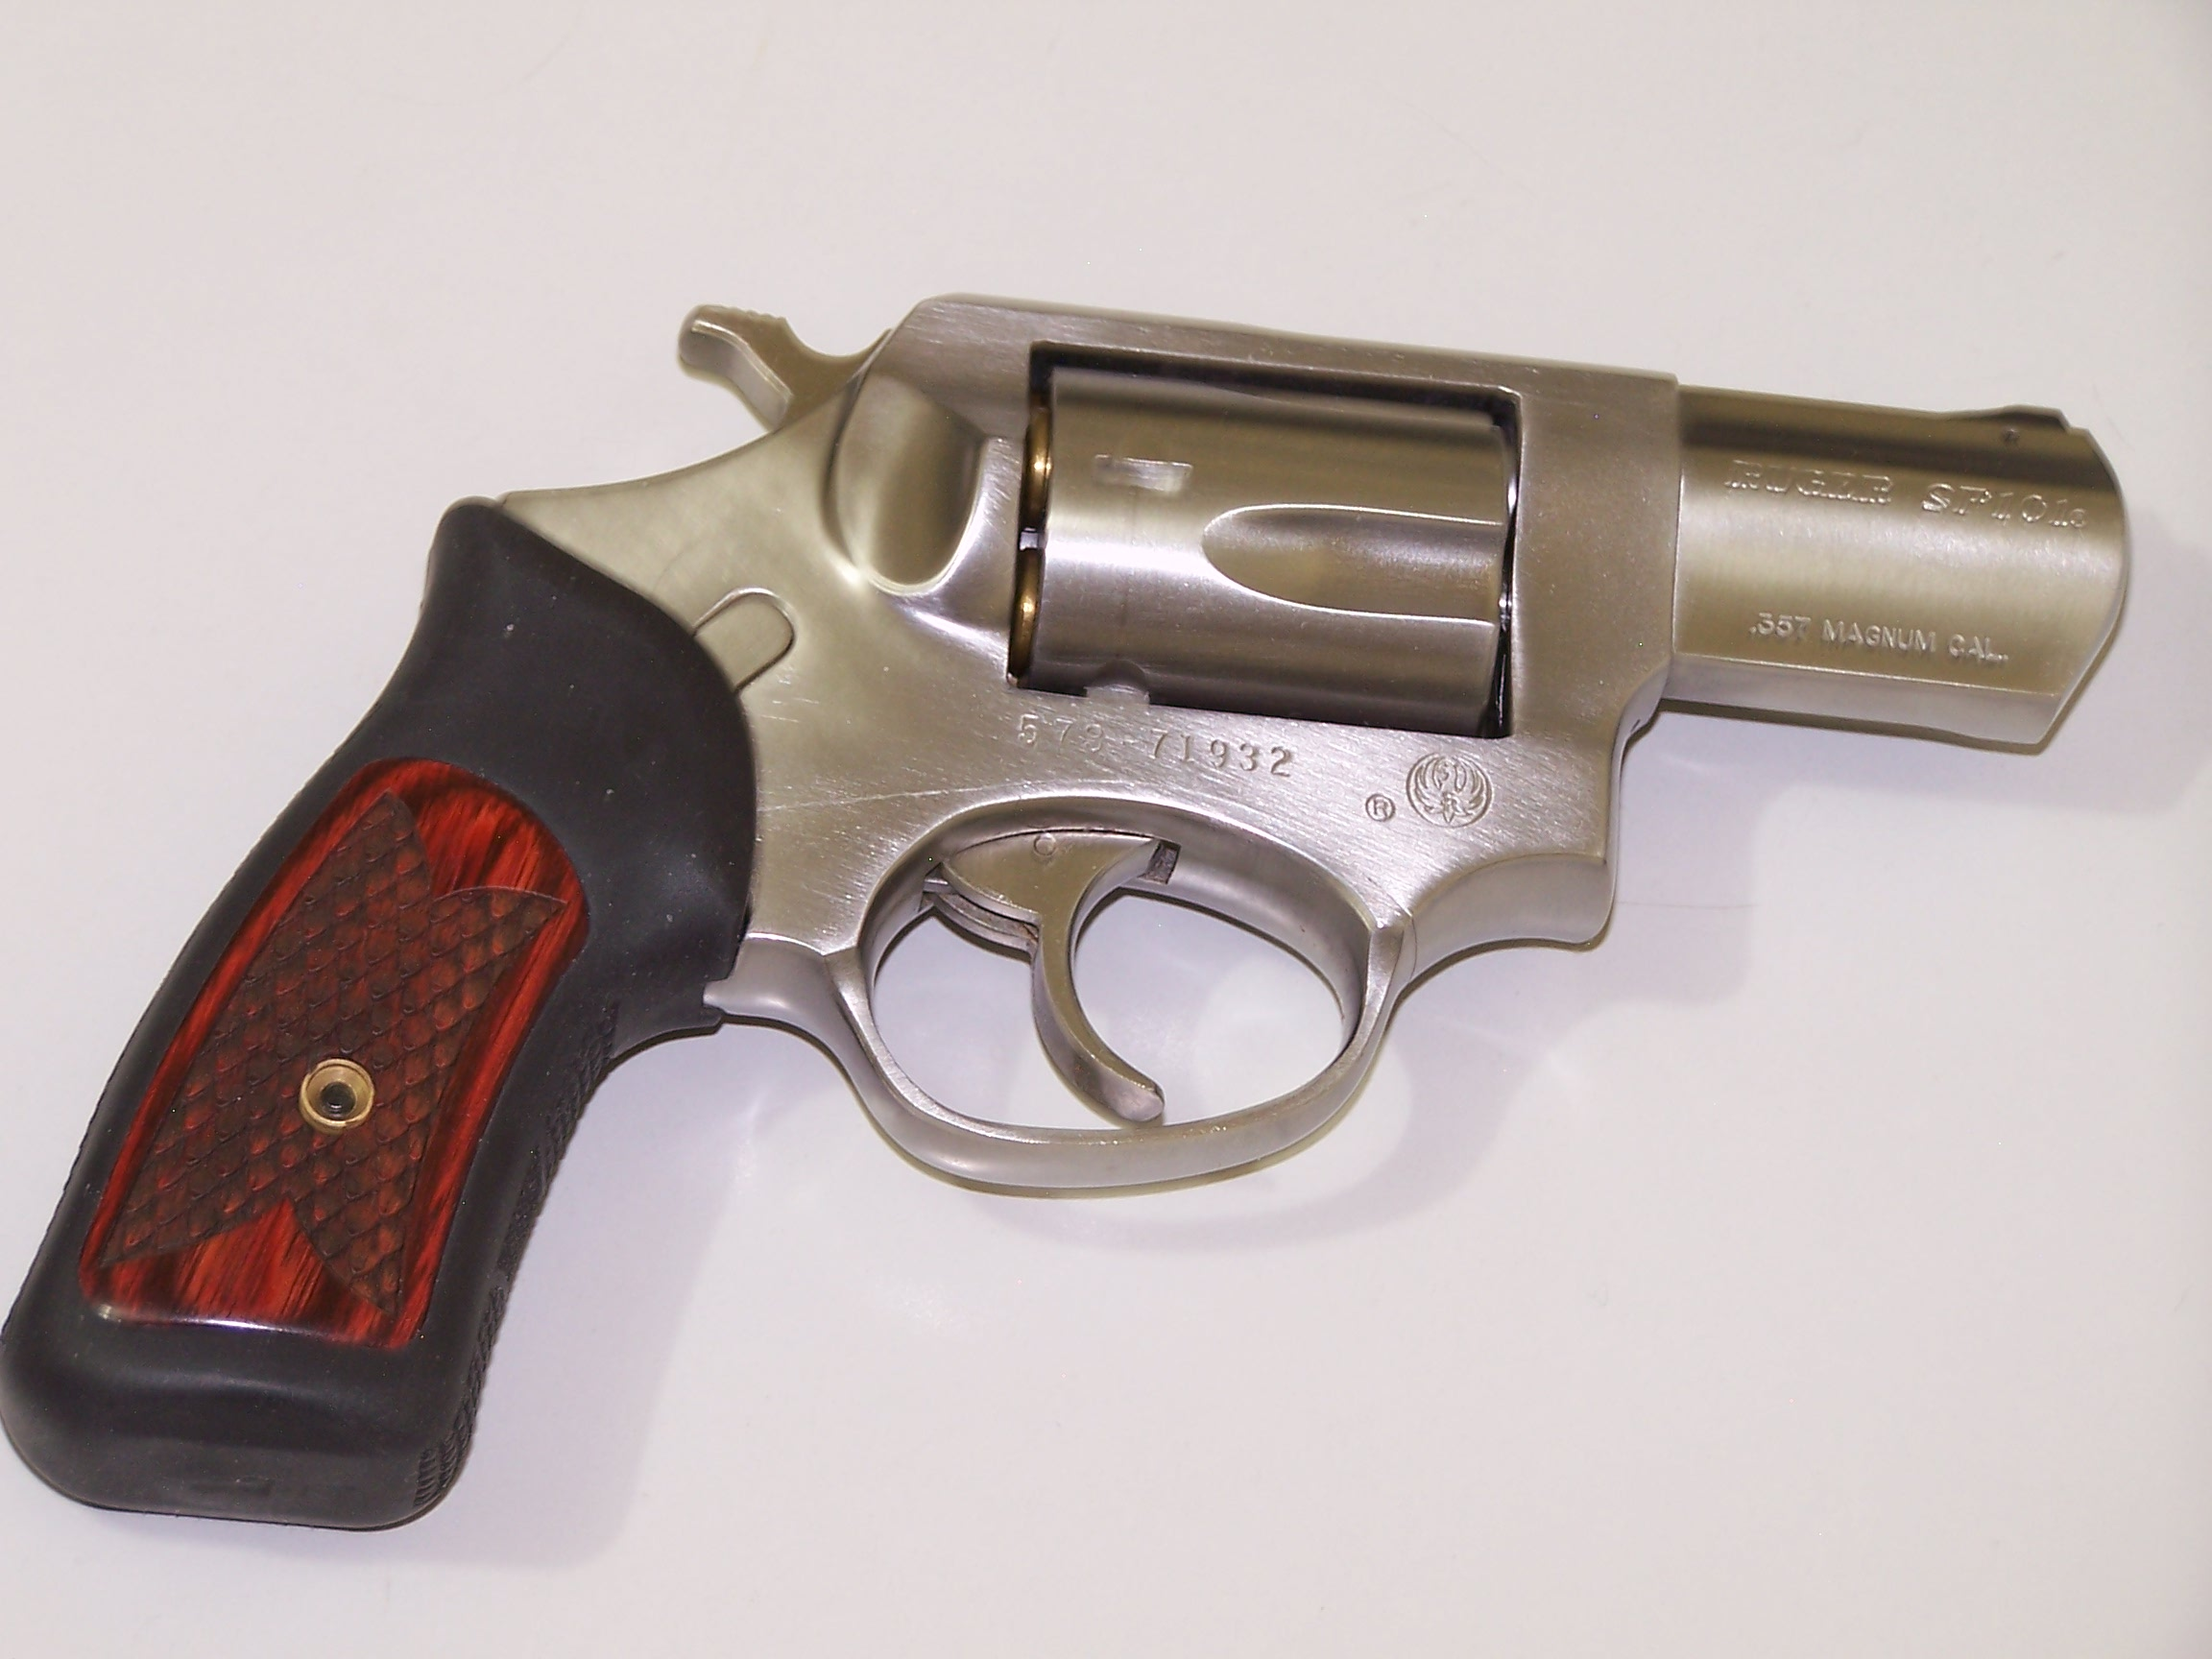 Revolvers -- 7 or 8rd, high performance, concealable-012.jpg